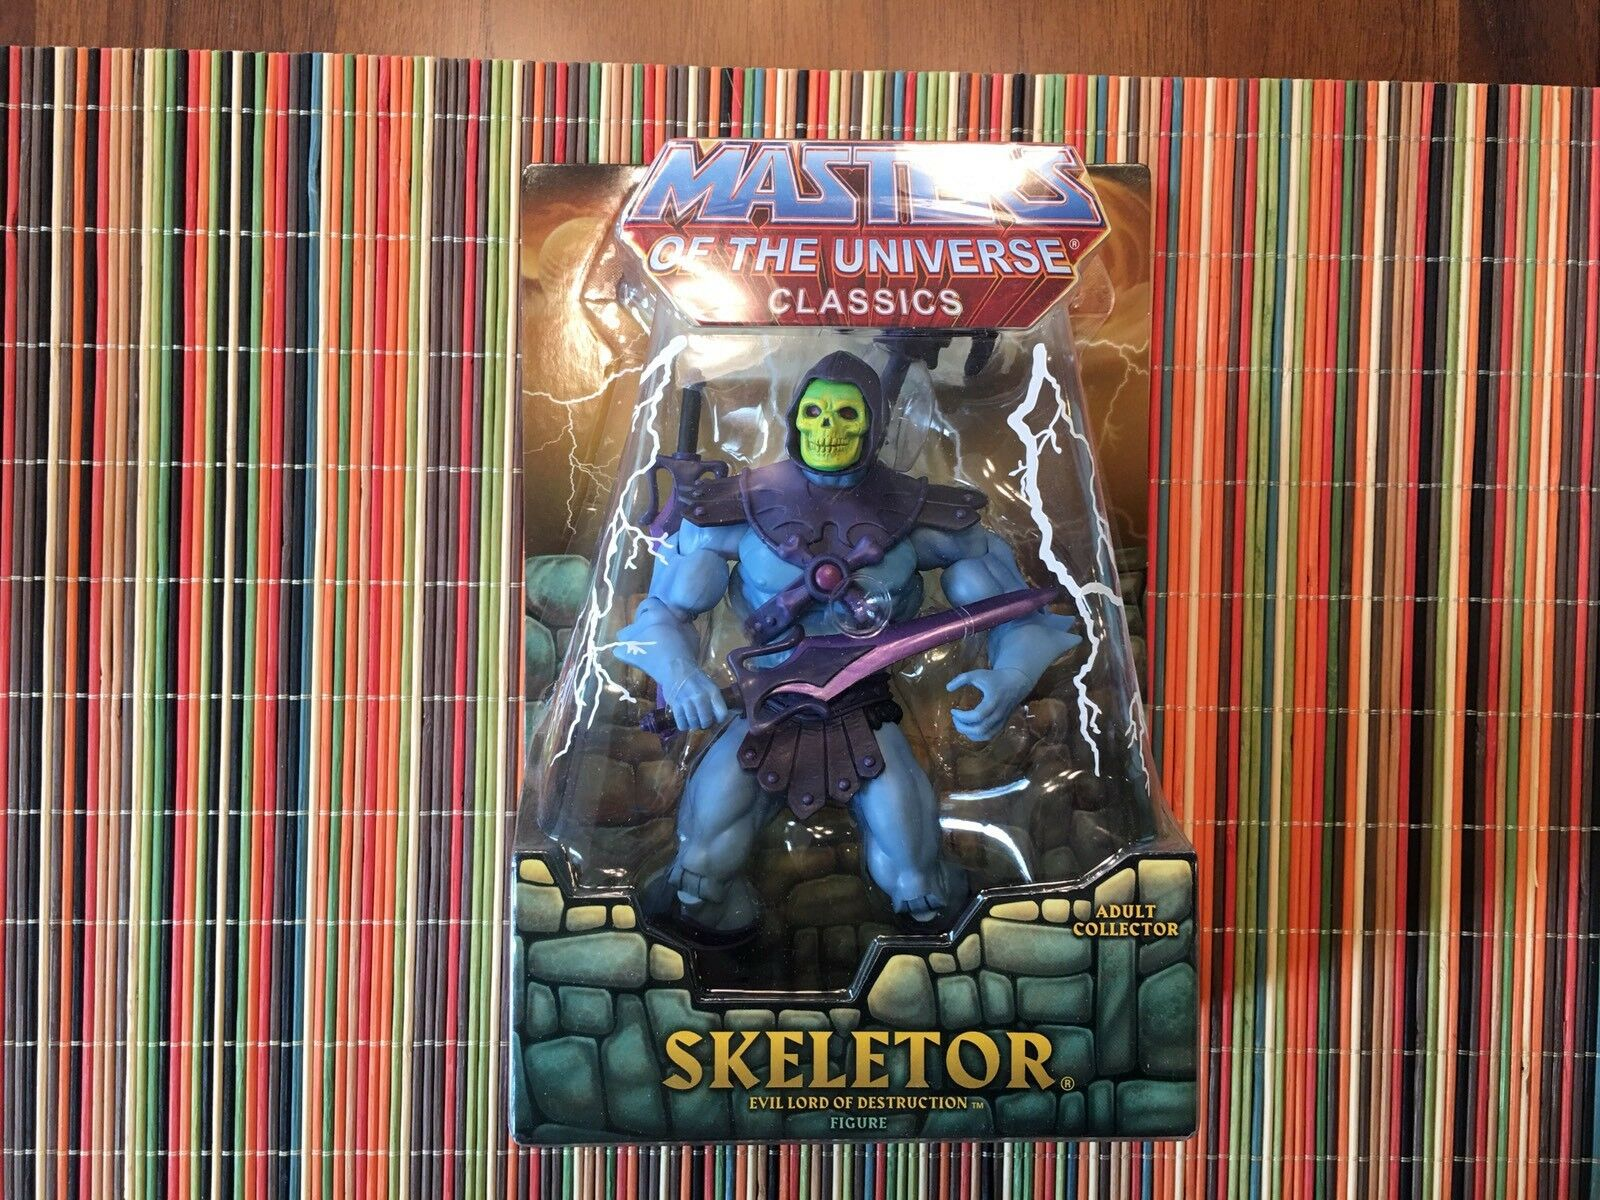 Masters Of The Universe Classics Skeletor Figure 1st Edition He-man MOTUC